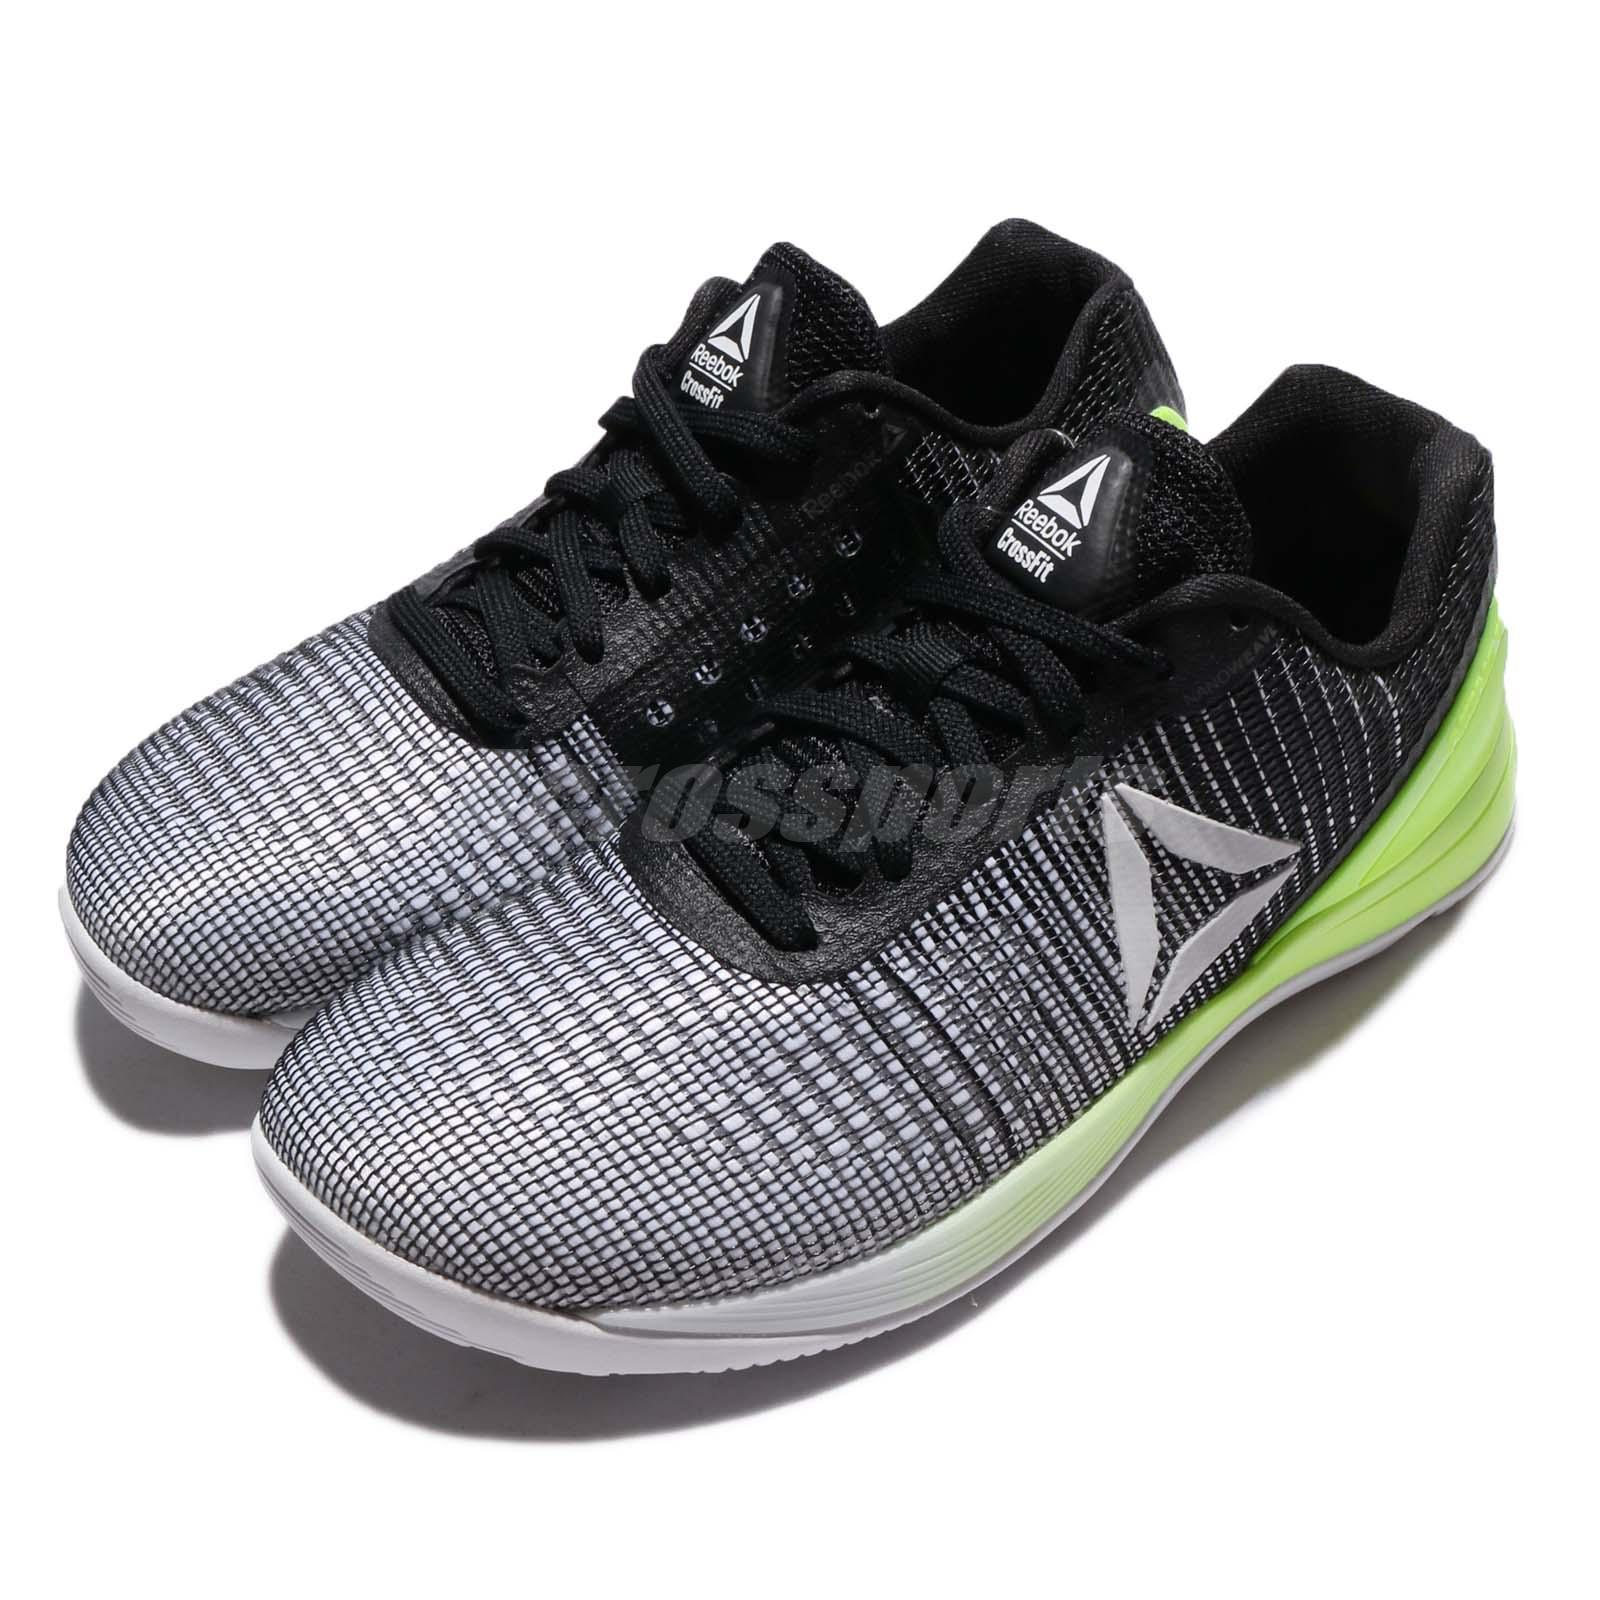 Details about Reebok CrossFit Nano 7 Weave Game Pack White Black Green  Women Training BS8295 8701c2242